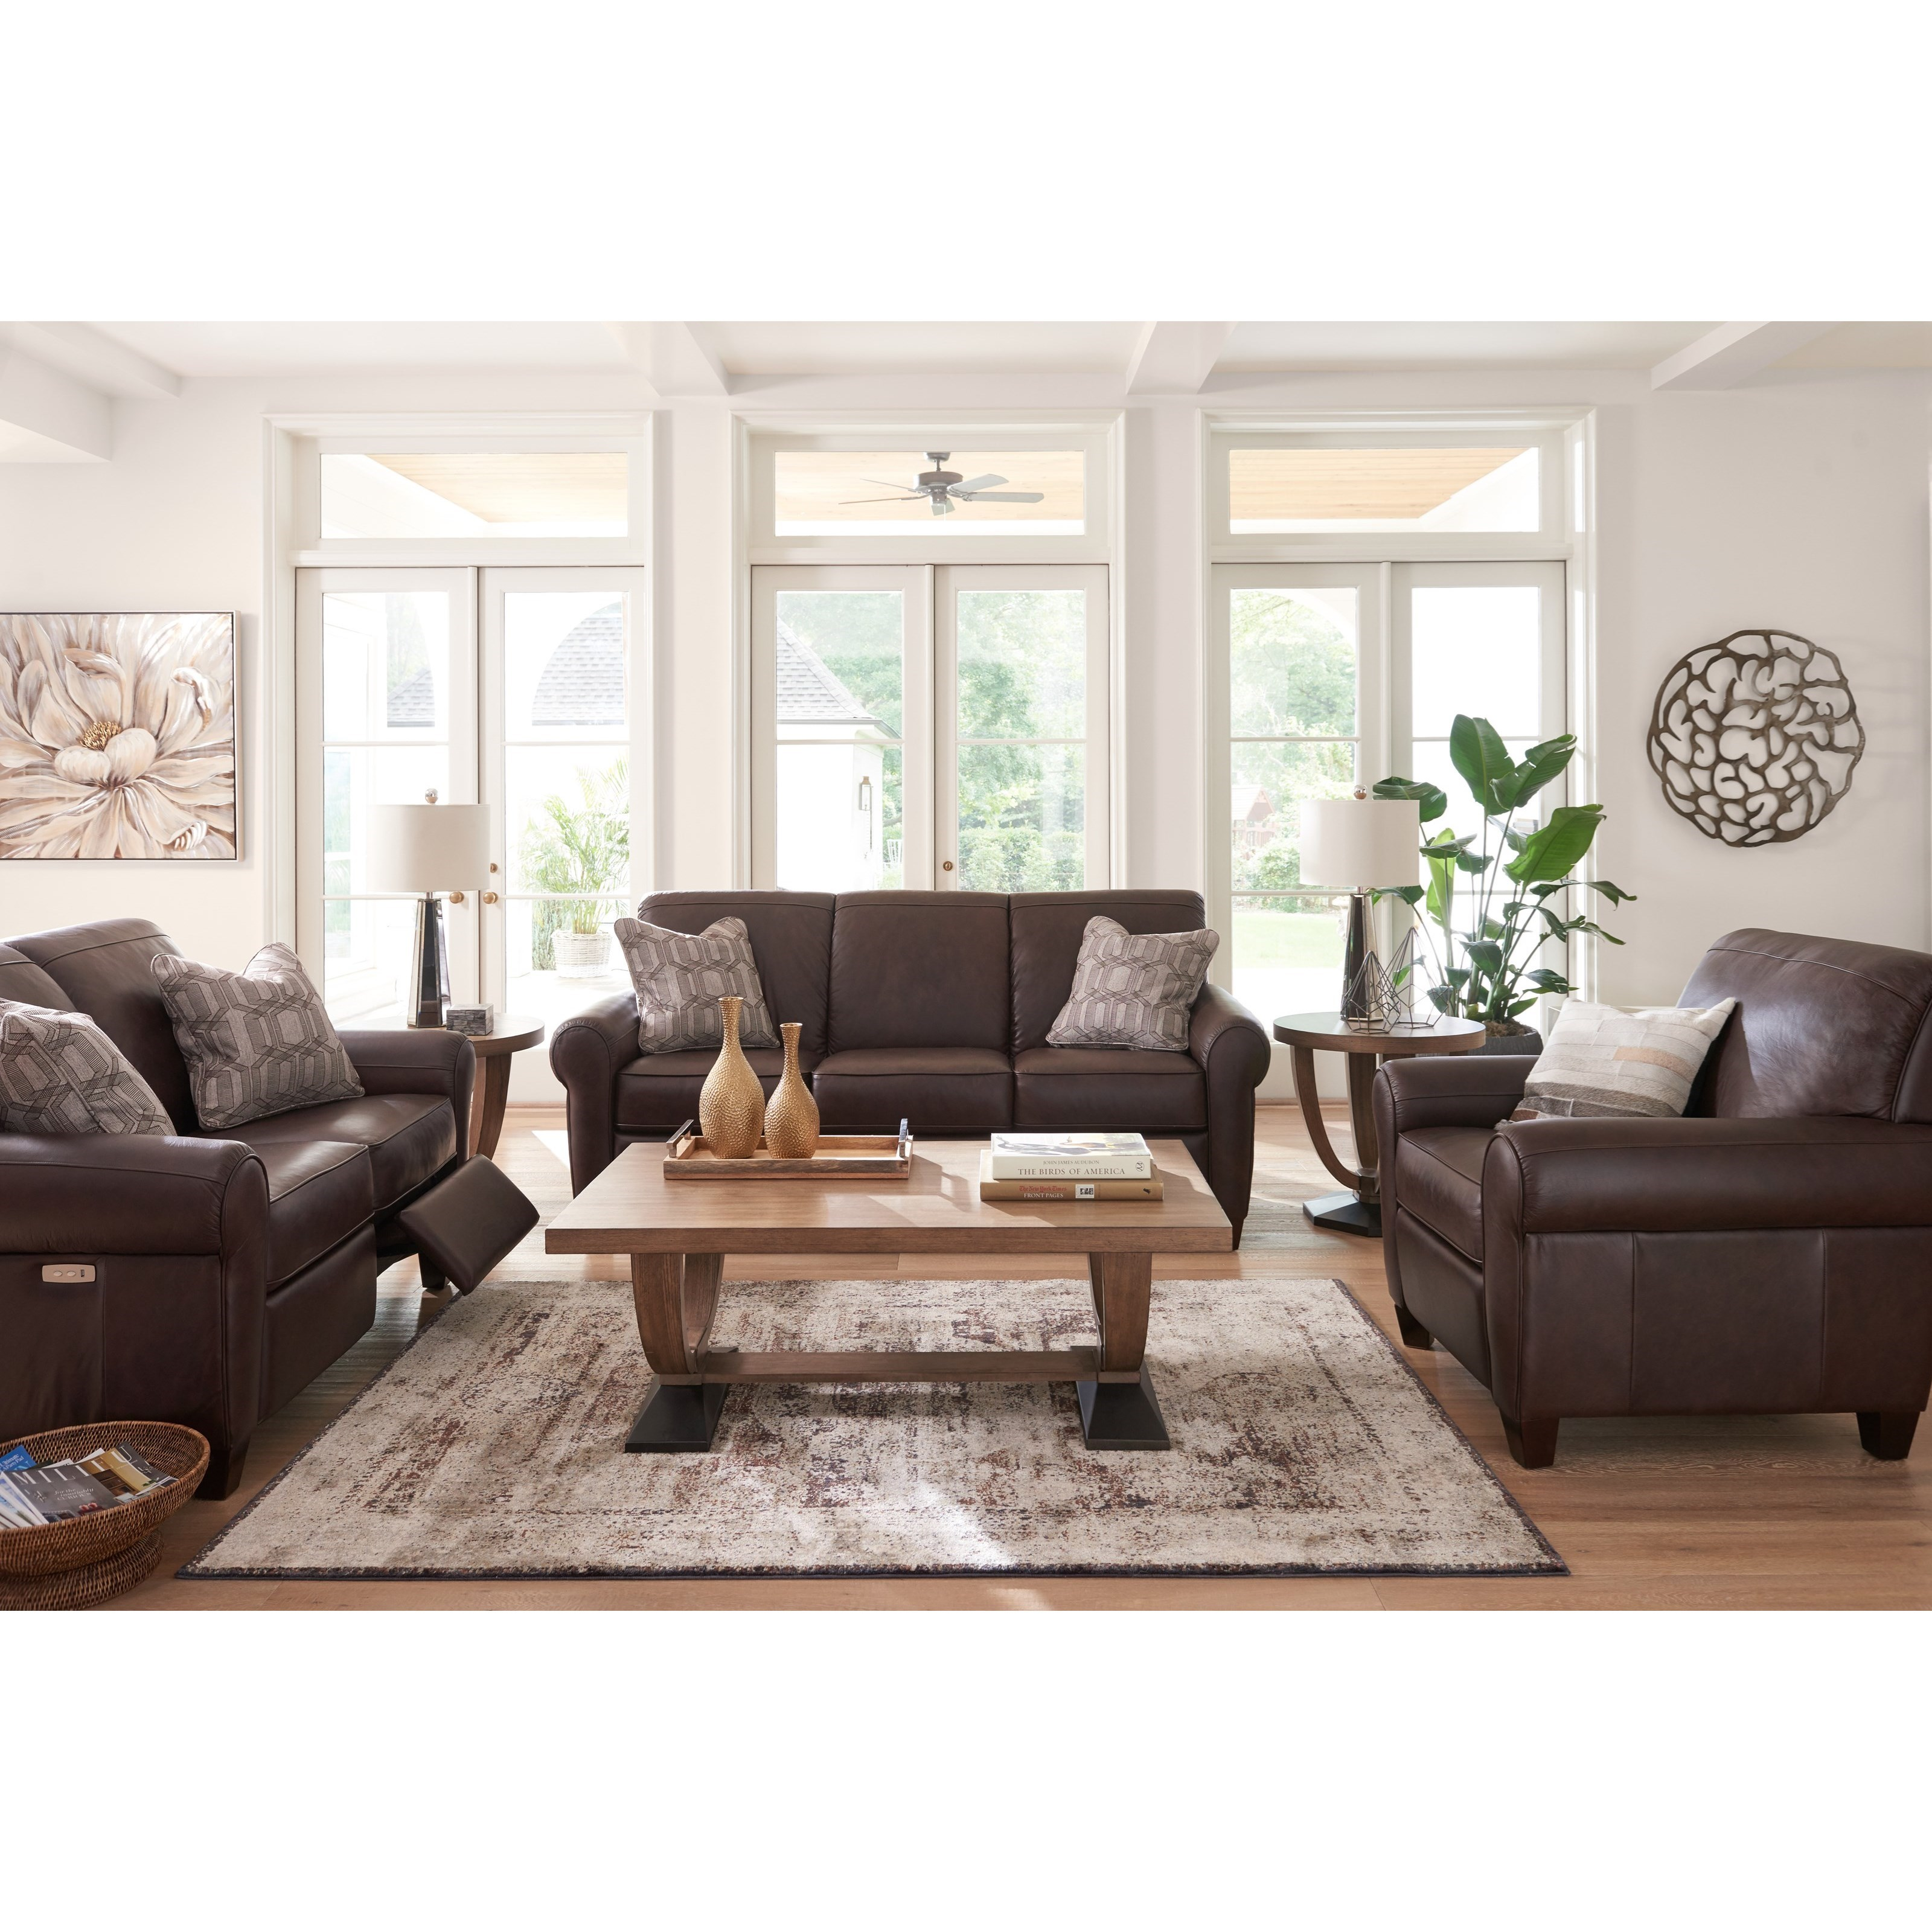 La z boy bennett reclining living room group zak 39 s fine for Living room furniture groups